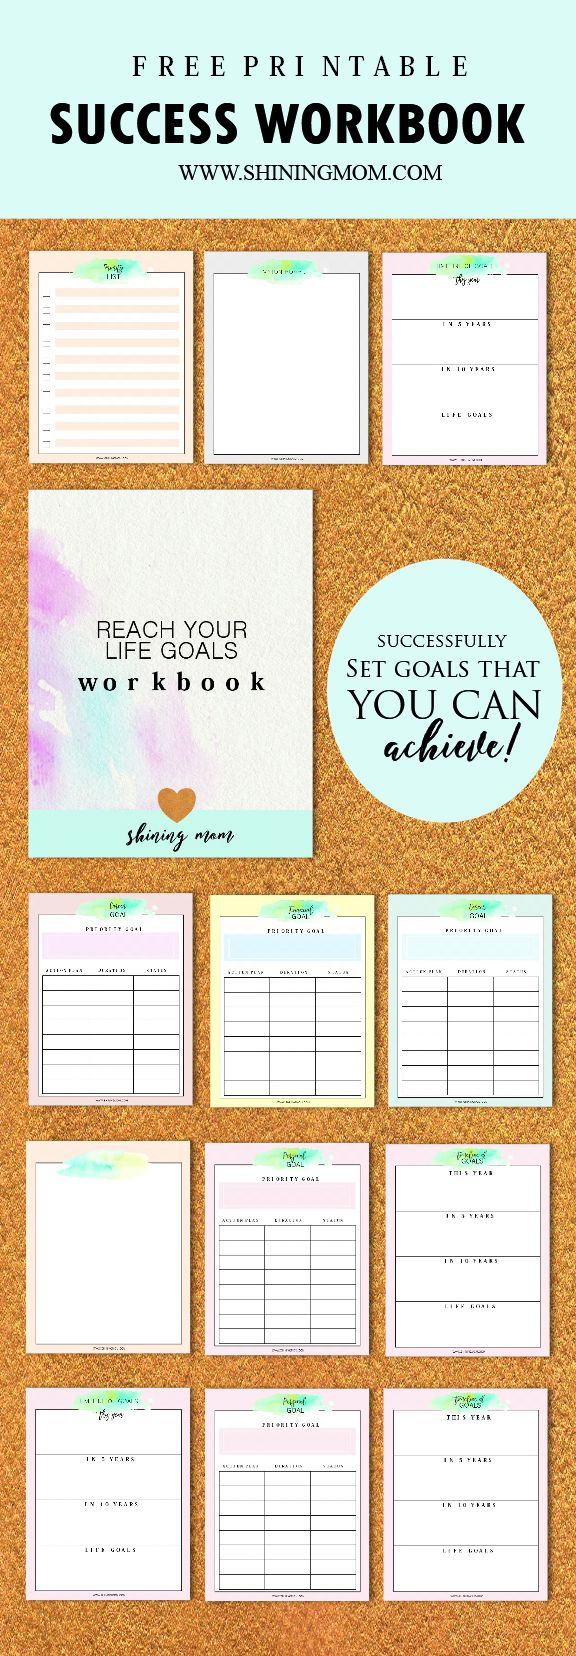 Download your free Success Workbook and Goal Setting Worksheets {newsletter subscription required}